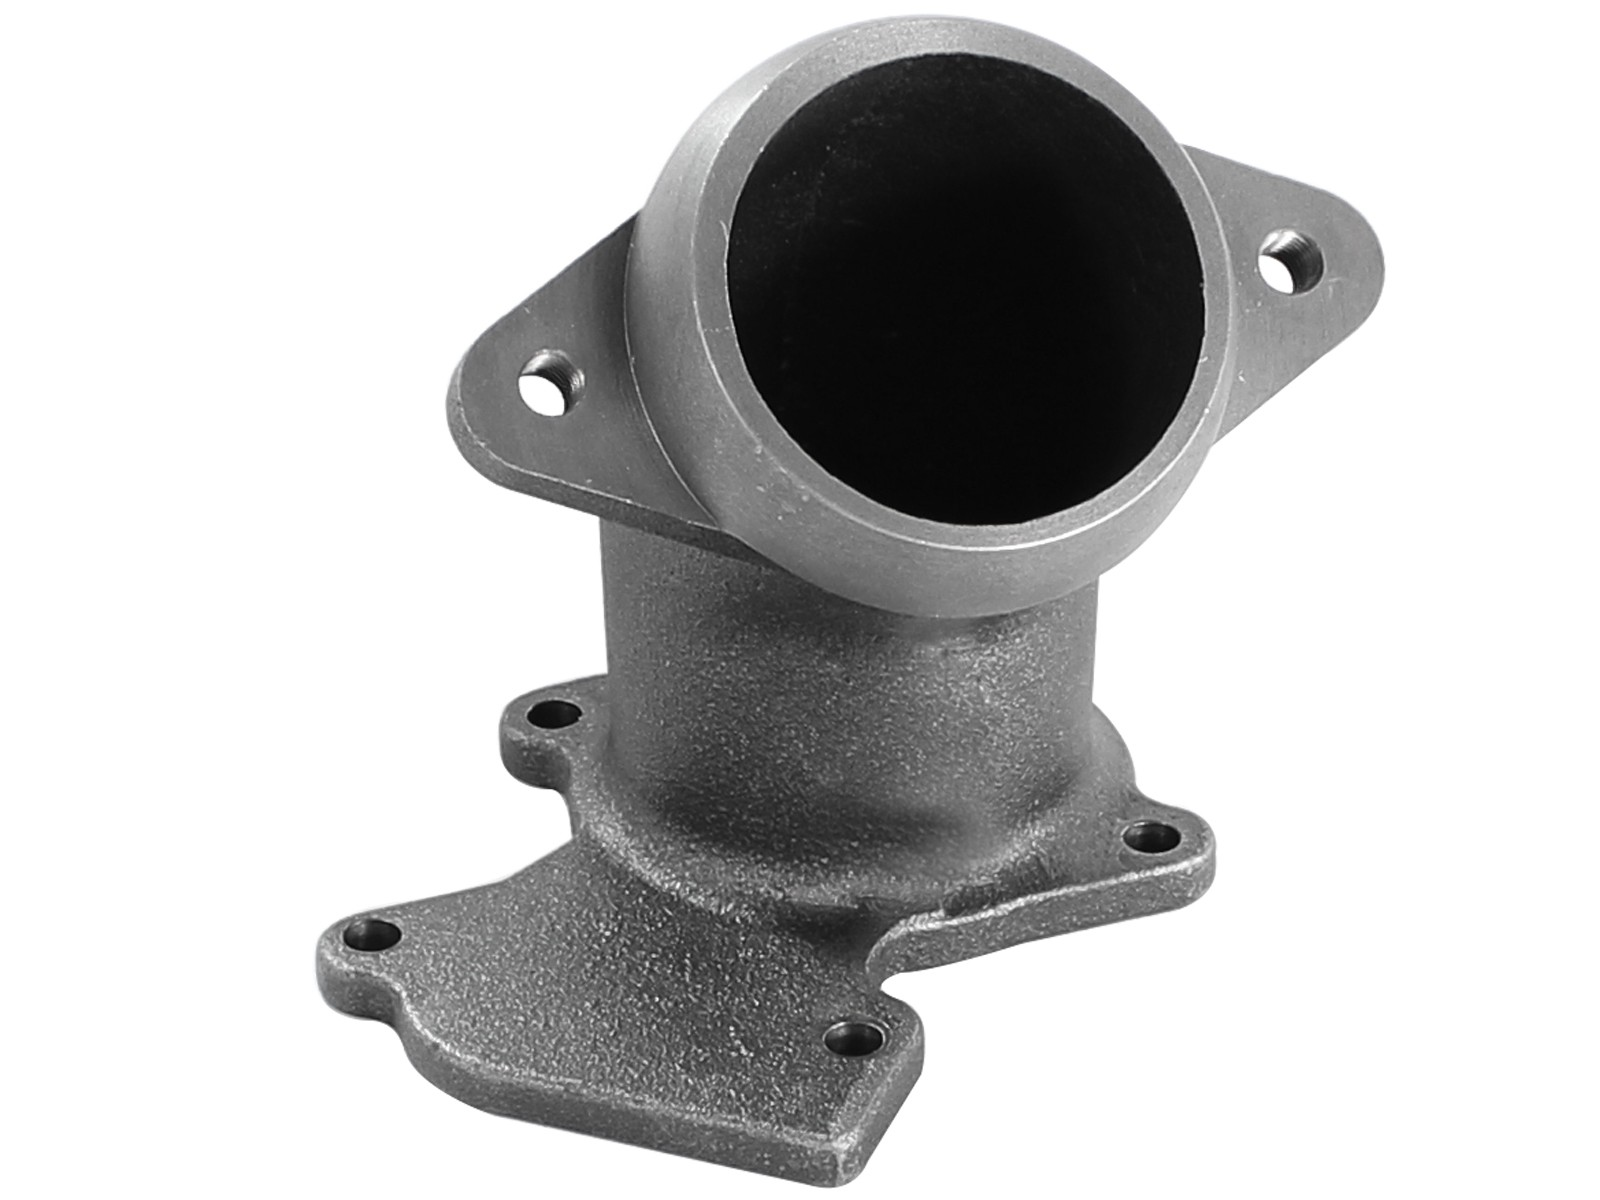 aFe POWER 46-60067 BladeRunner Turbocharger Turbine Elbow Replacement